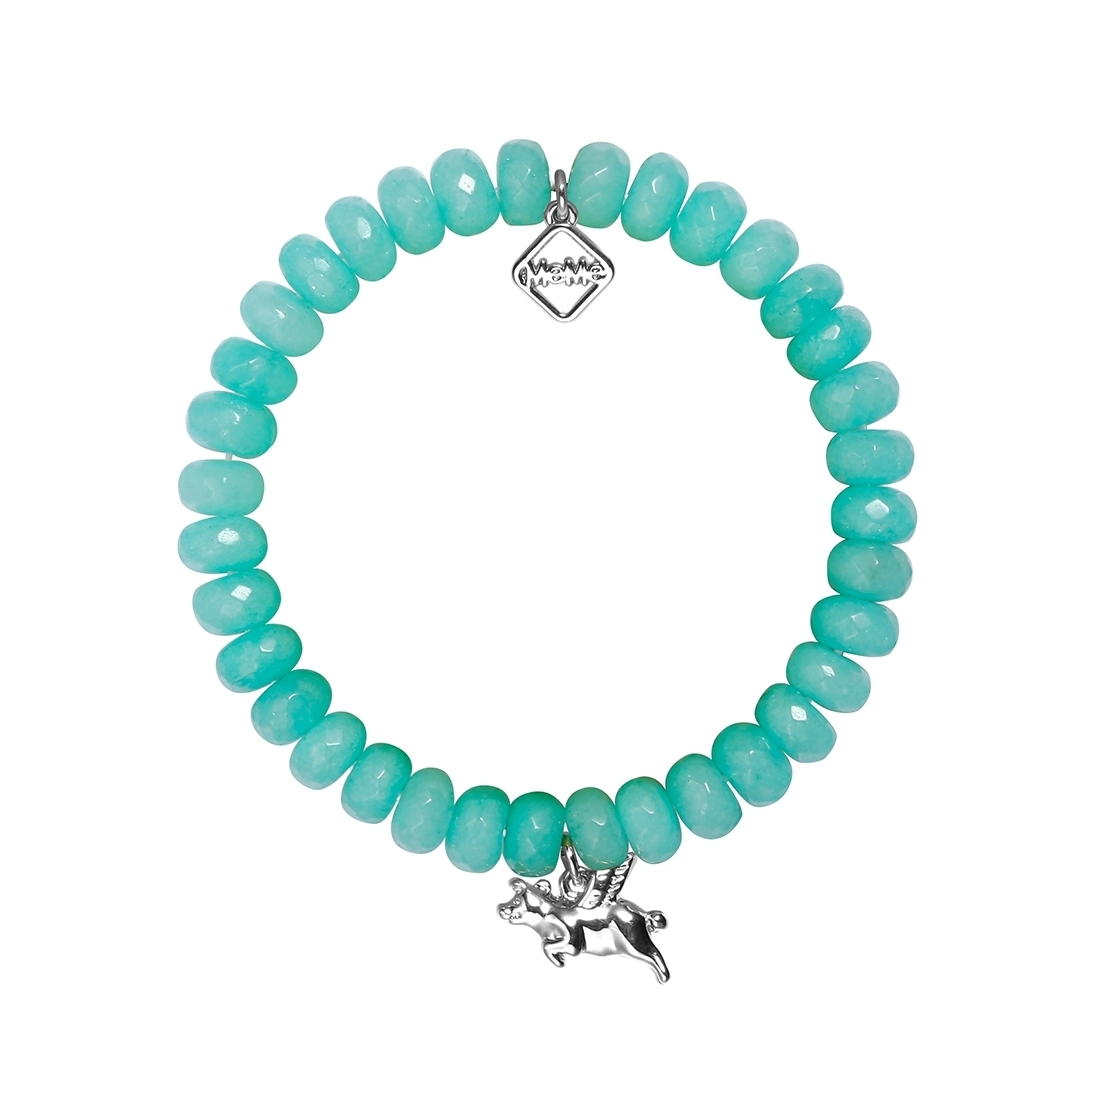 MEME LONDON When Pigs Fly - Mint Turquoise With White Gold